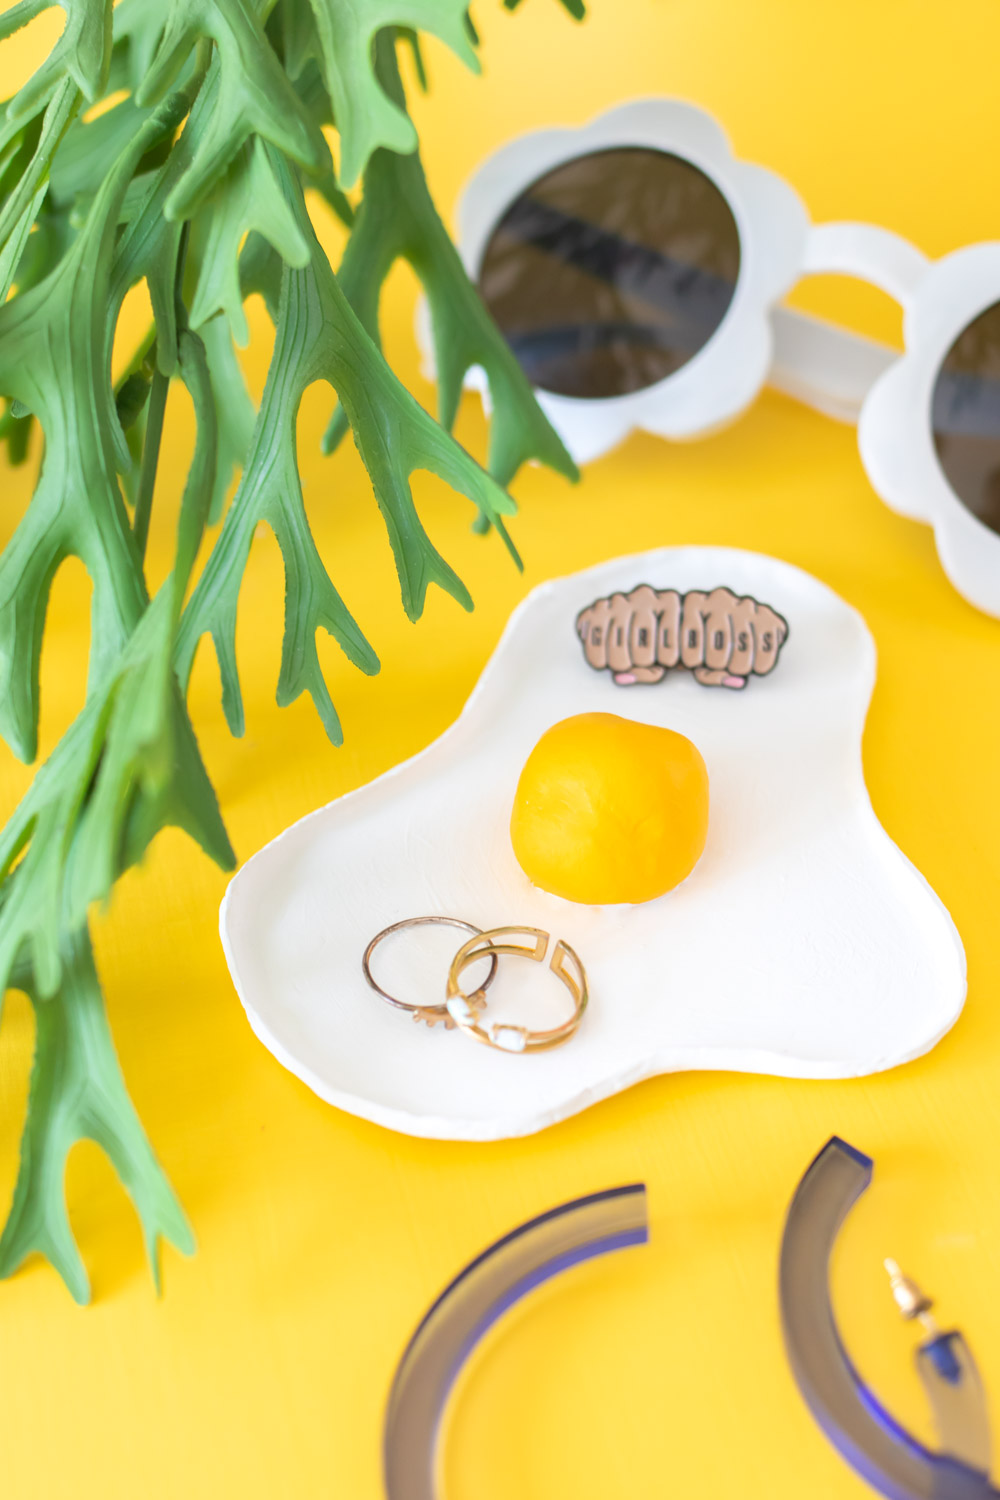 catch-all tray shaped like fried egg with rings and sunglasses